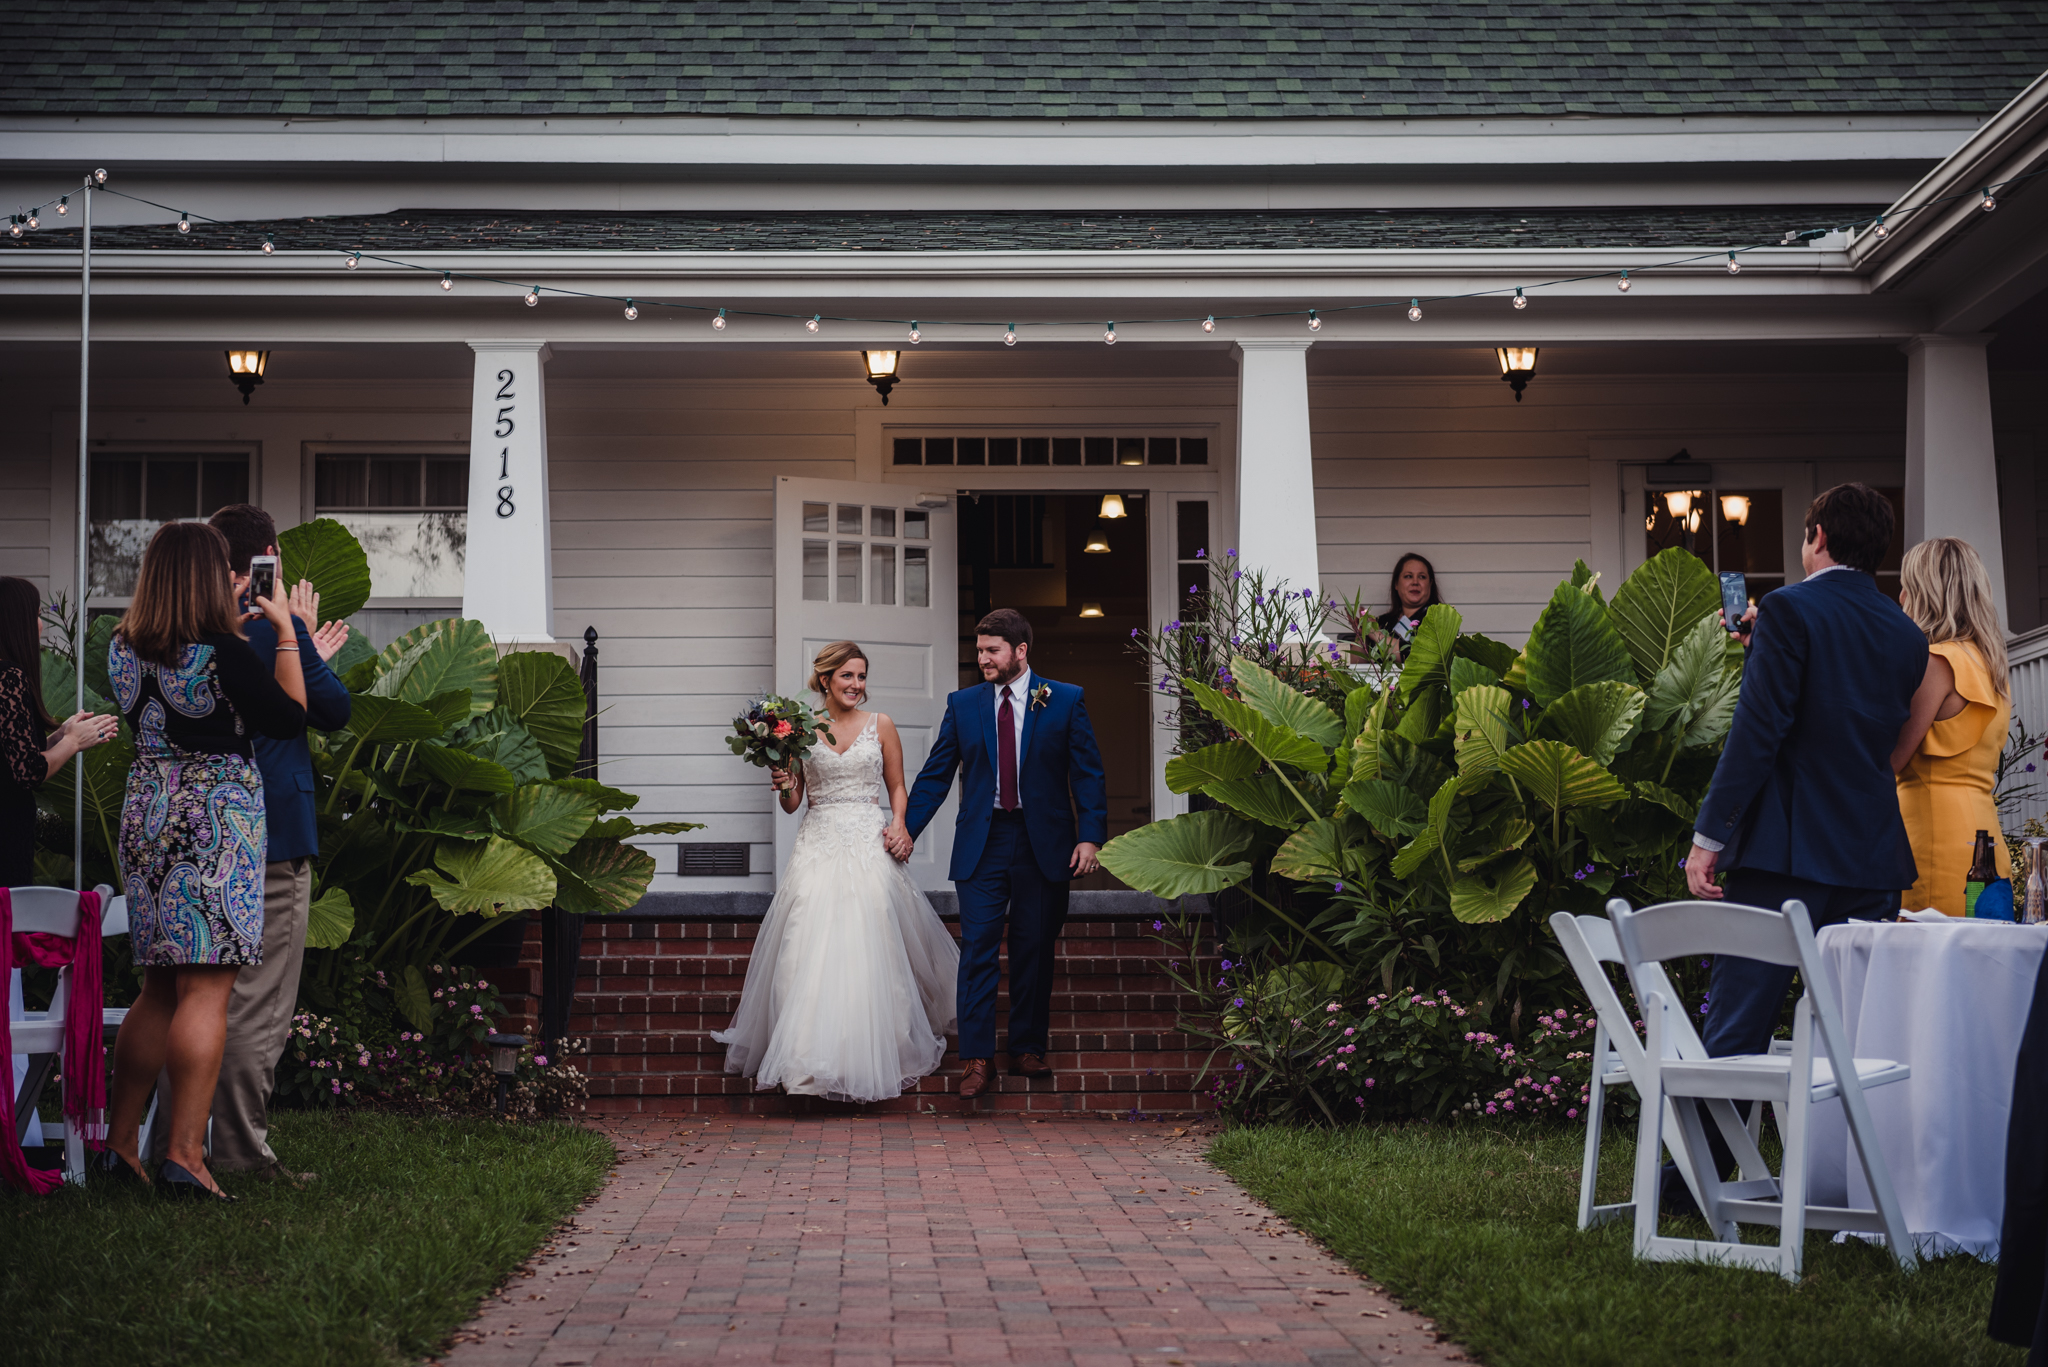 bride-and-groom-entrance-into-the-reception.jpg